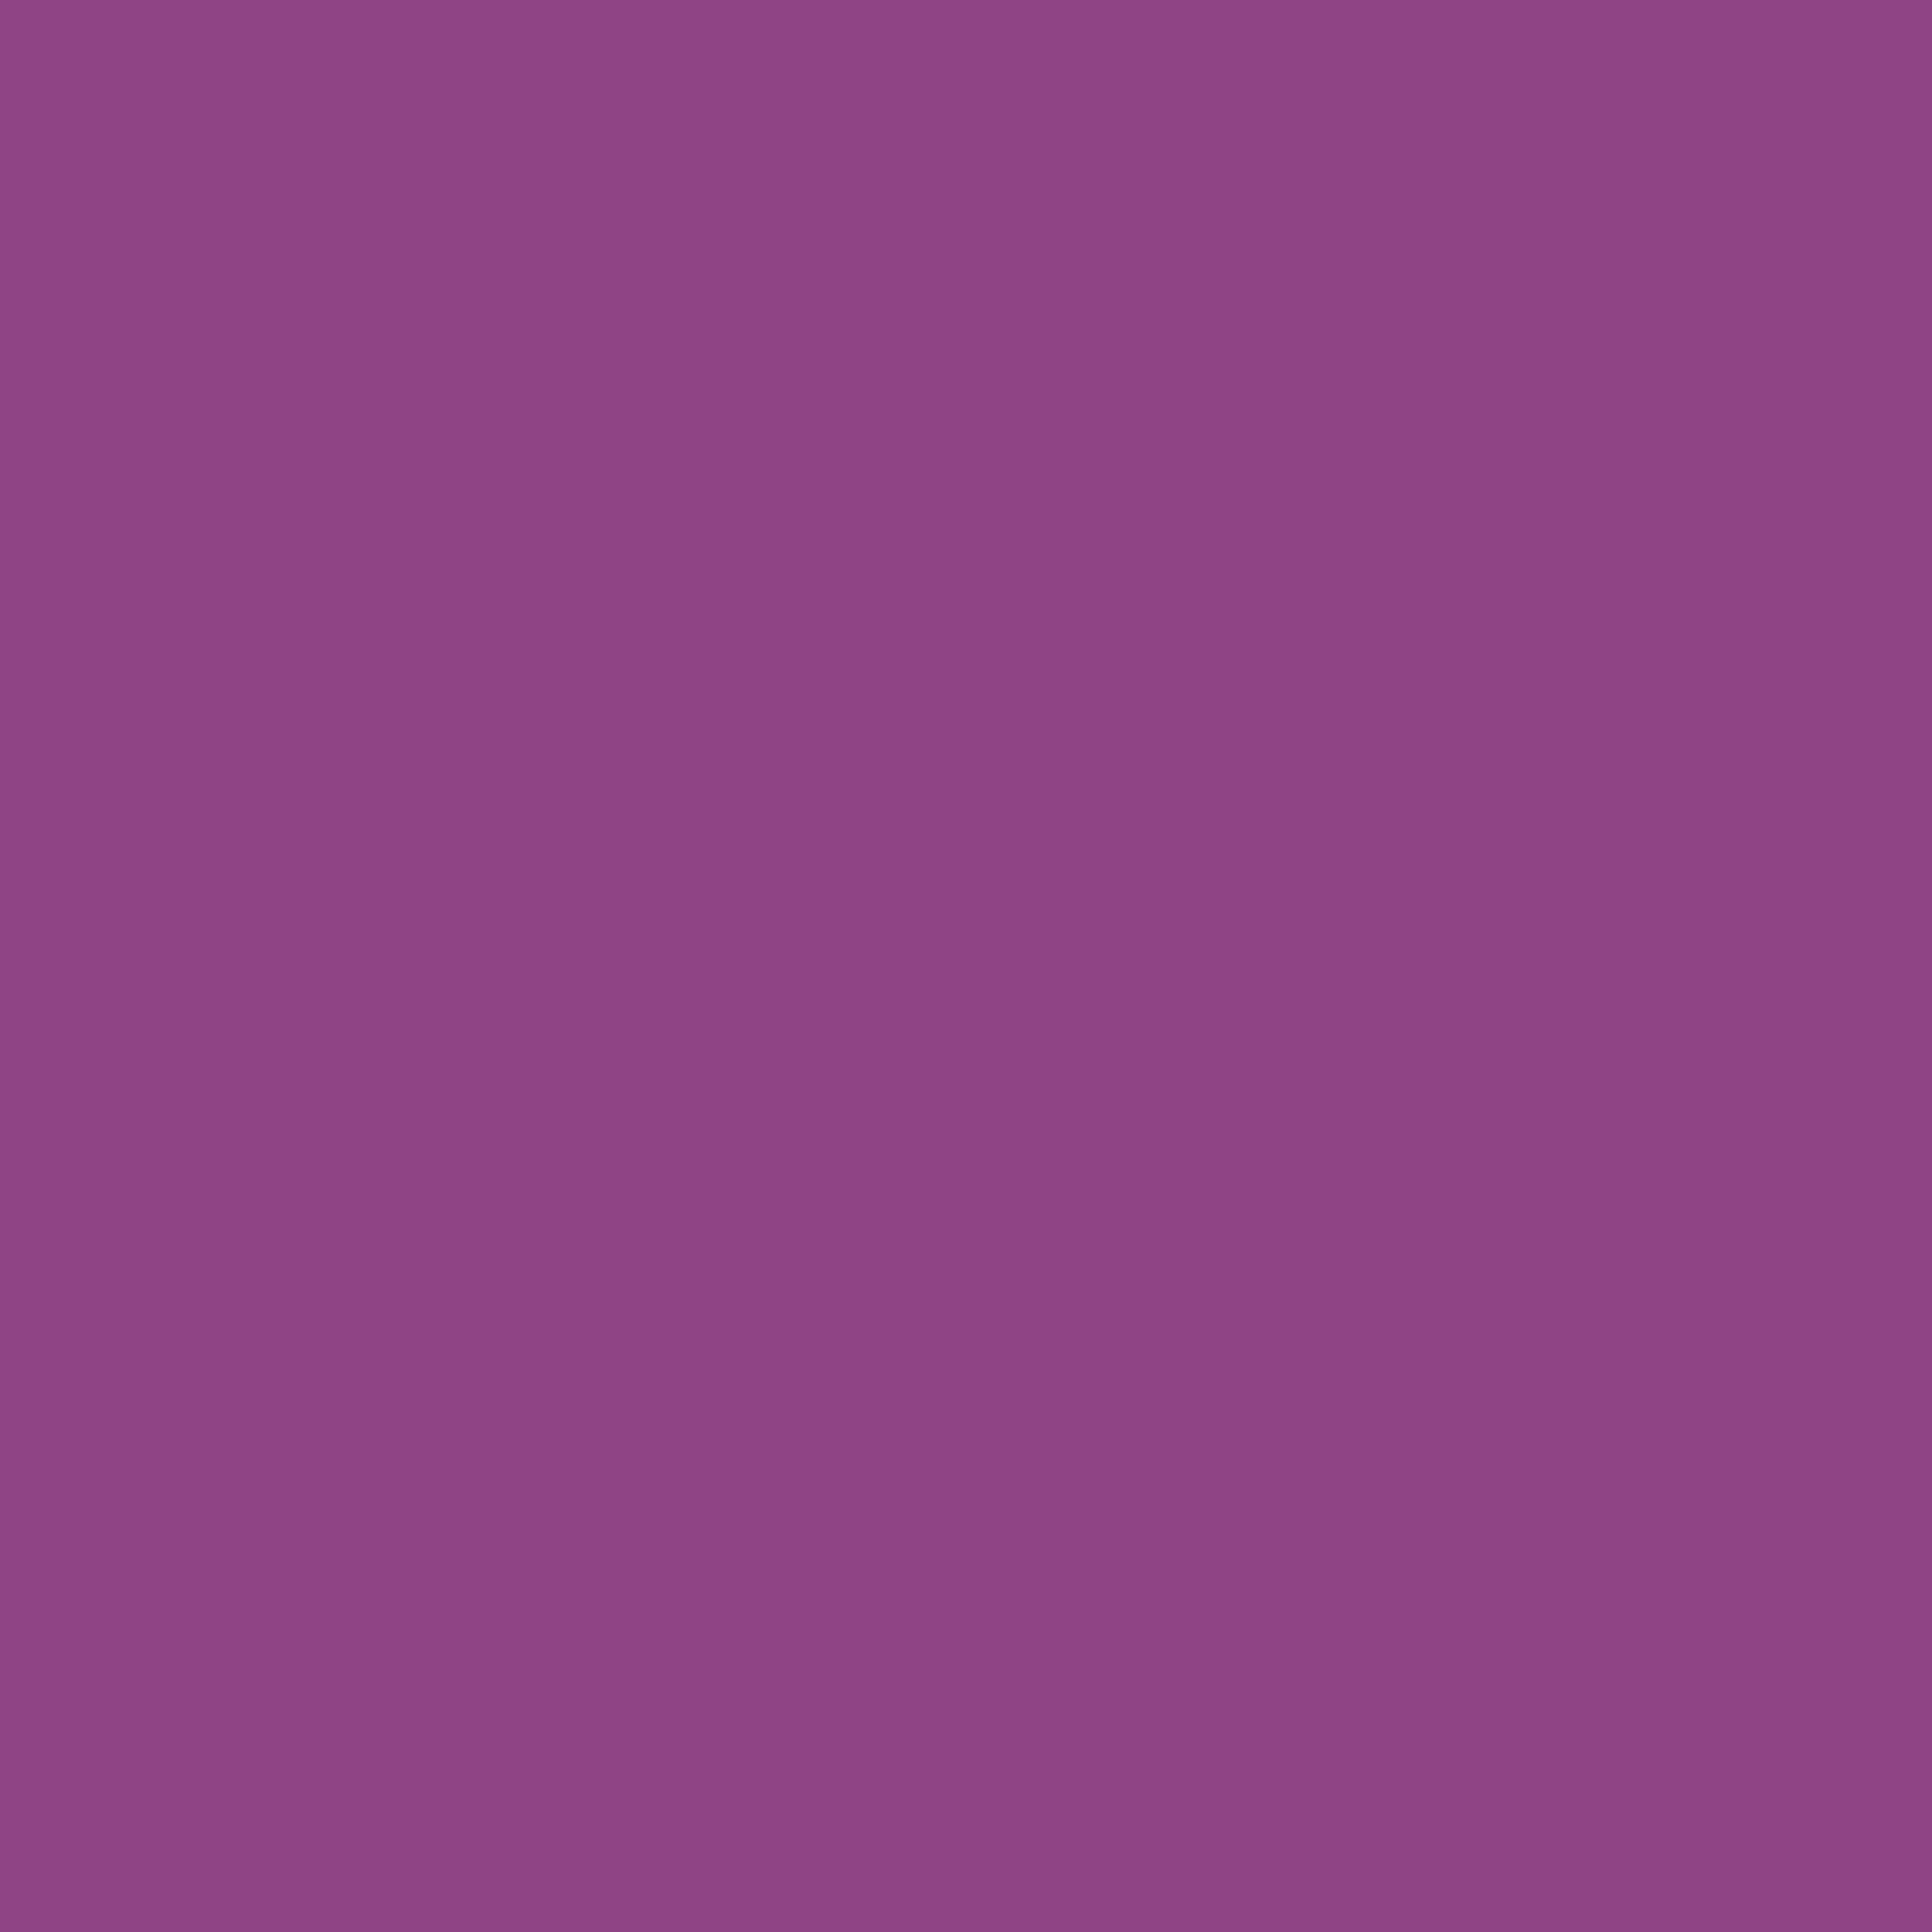 2048x2048 Plum Traditional Solid Color Background